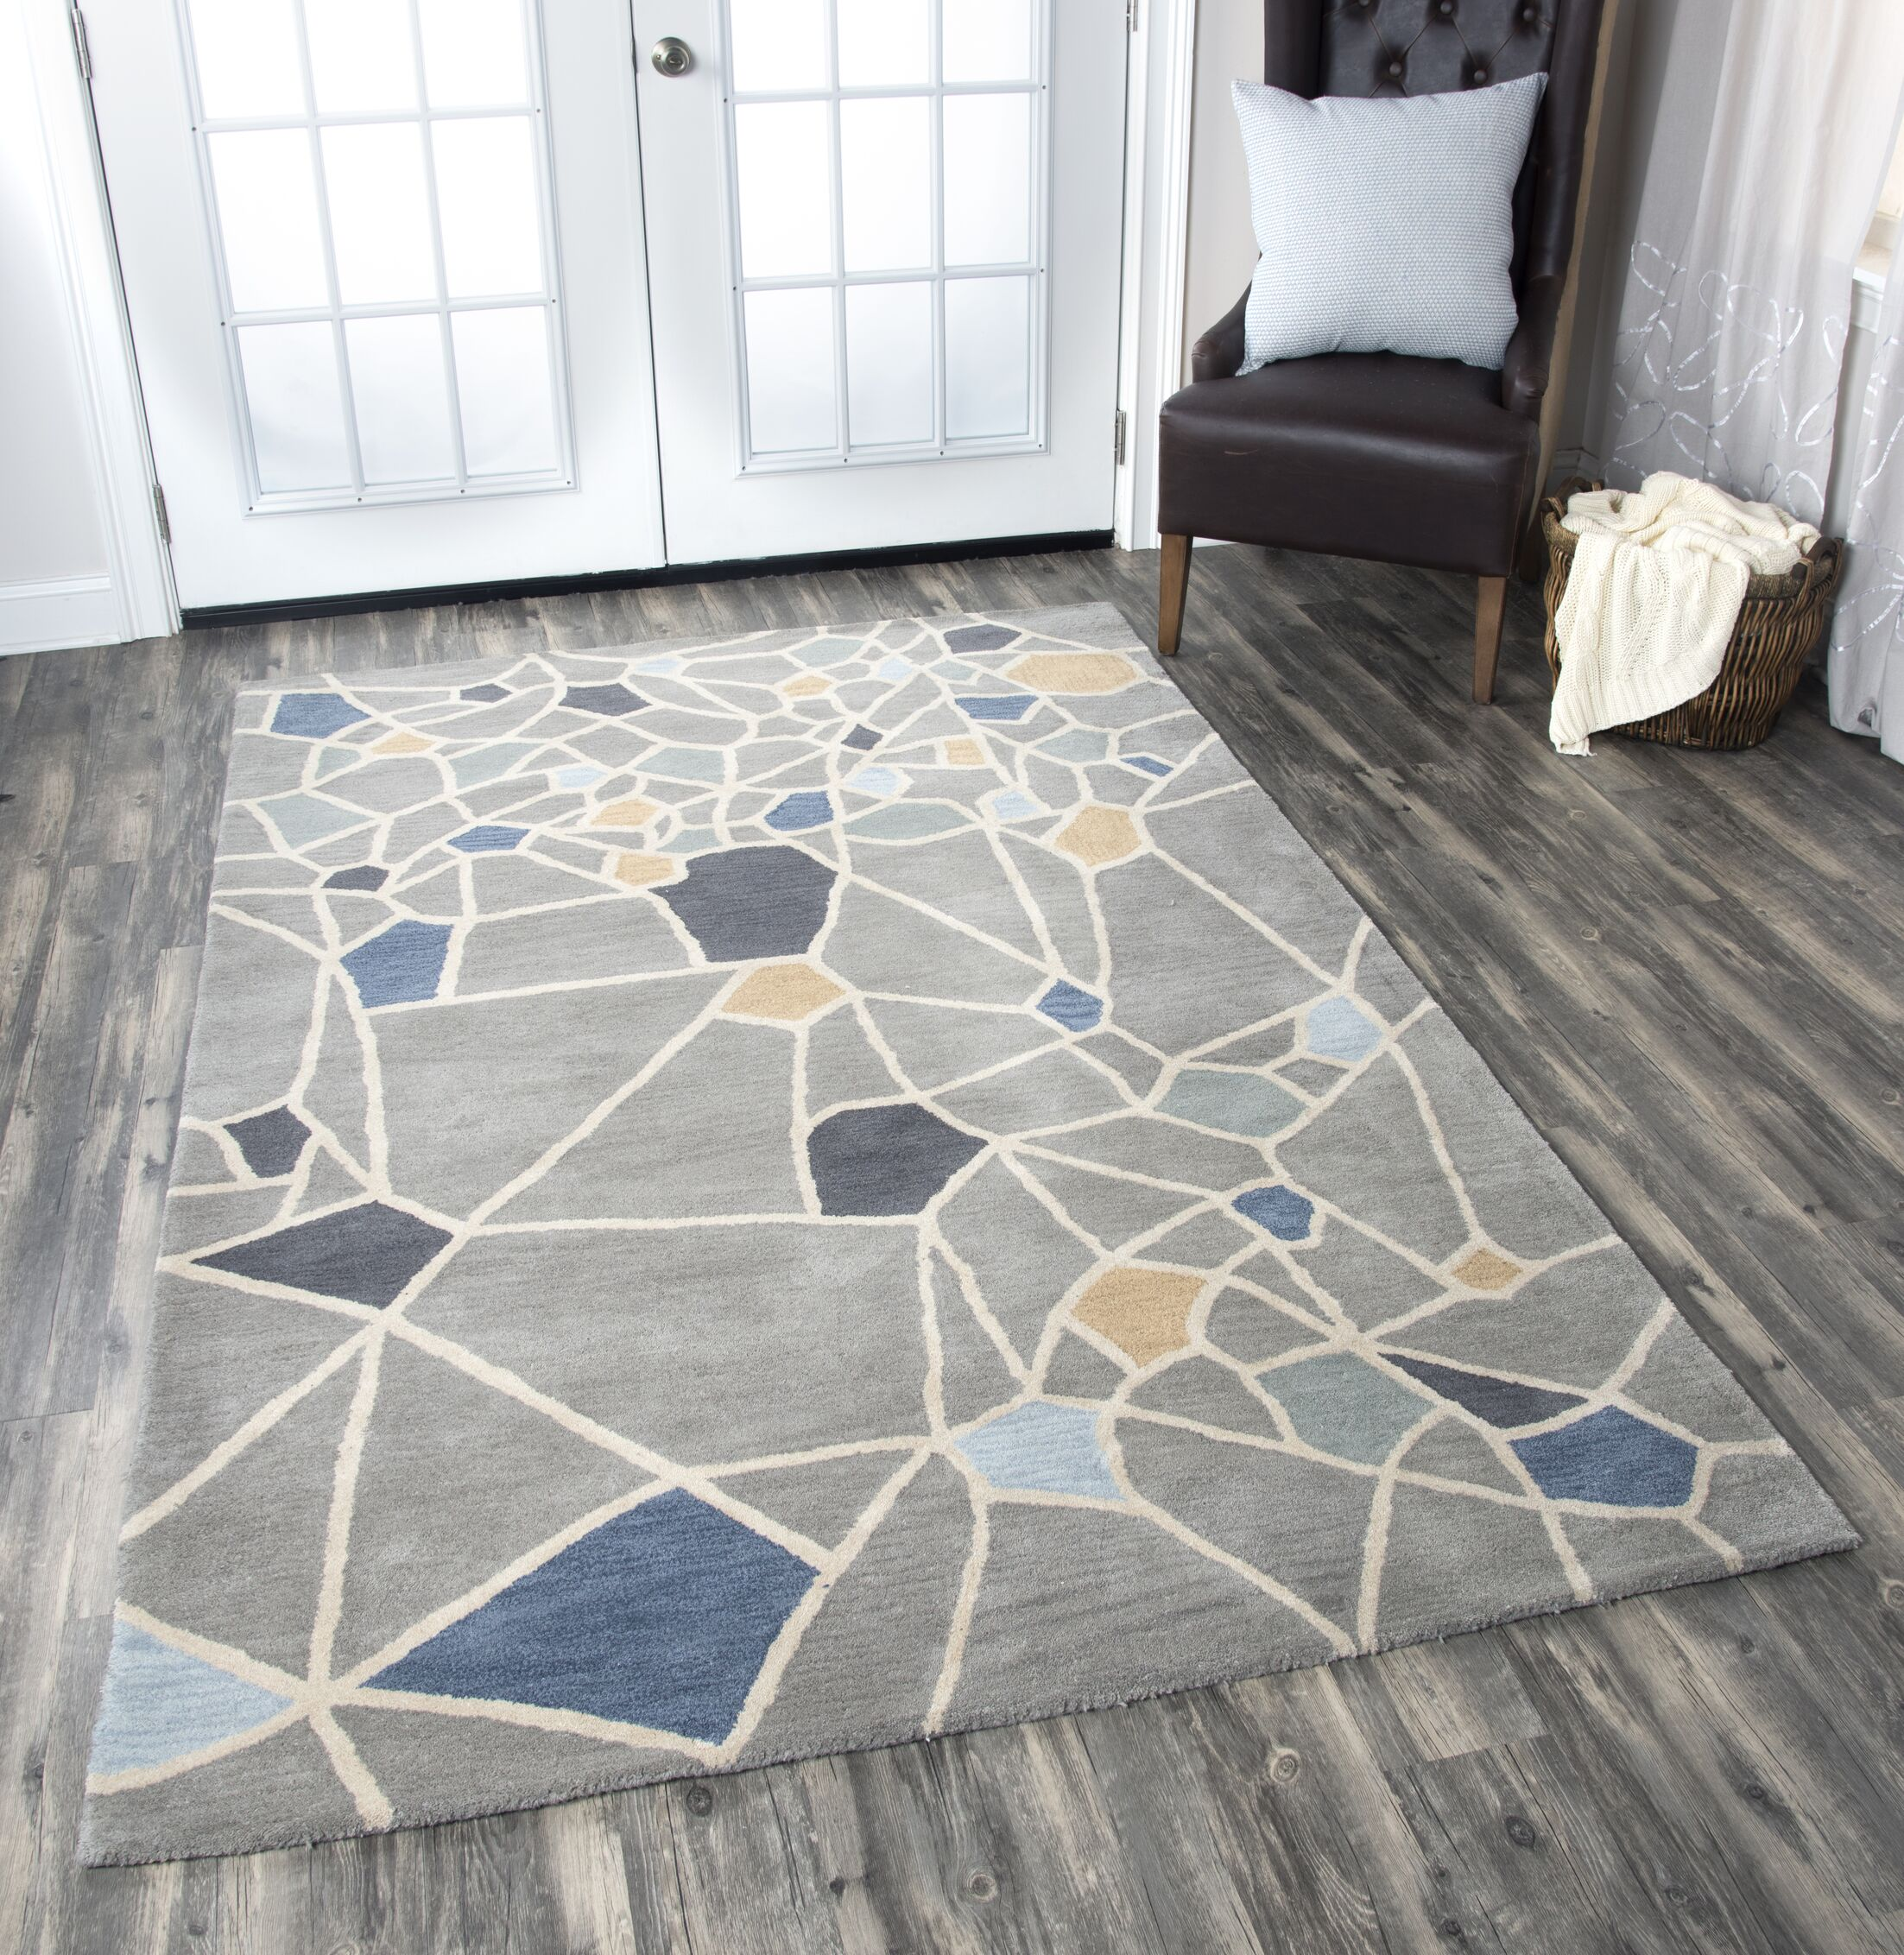 Rigoberto Hand-Tufted Gray Area Rug Rug Size: Rectangle 10' x 14'